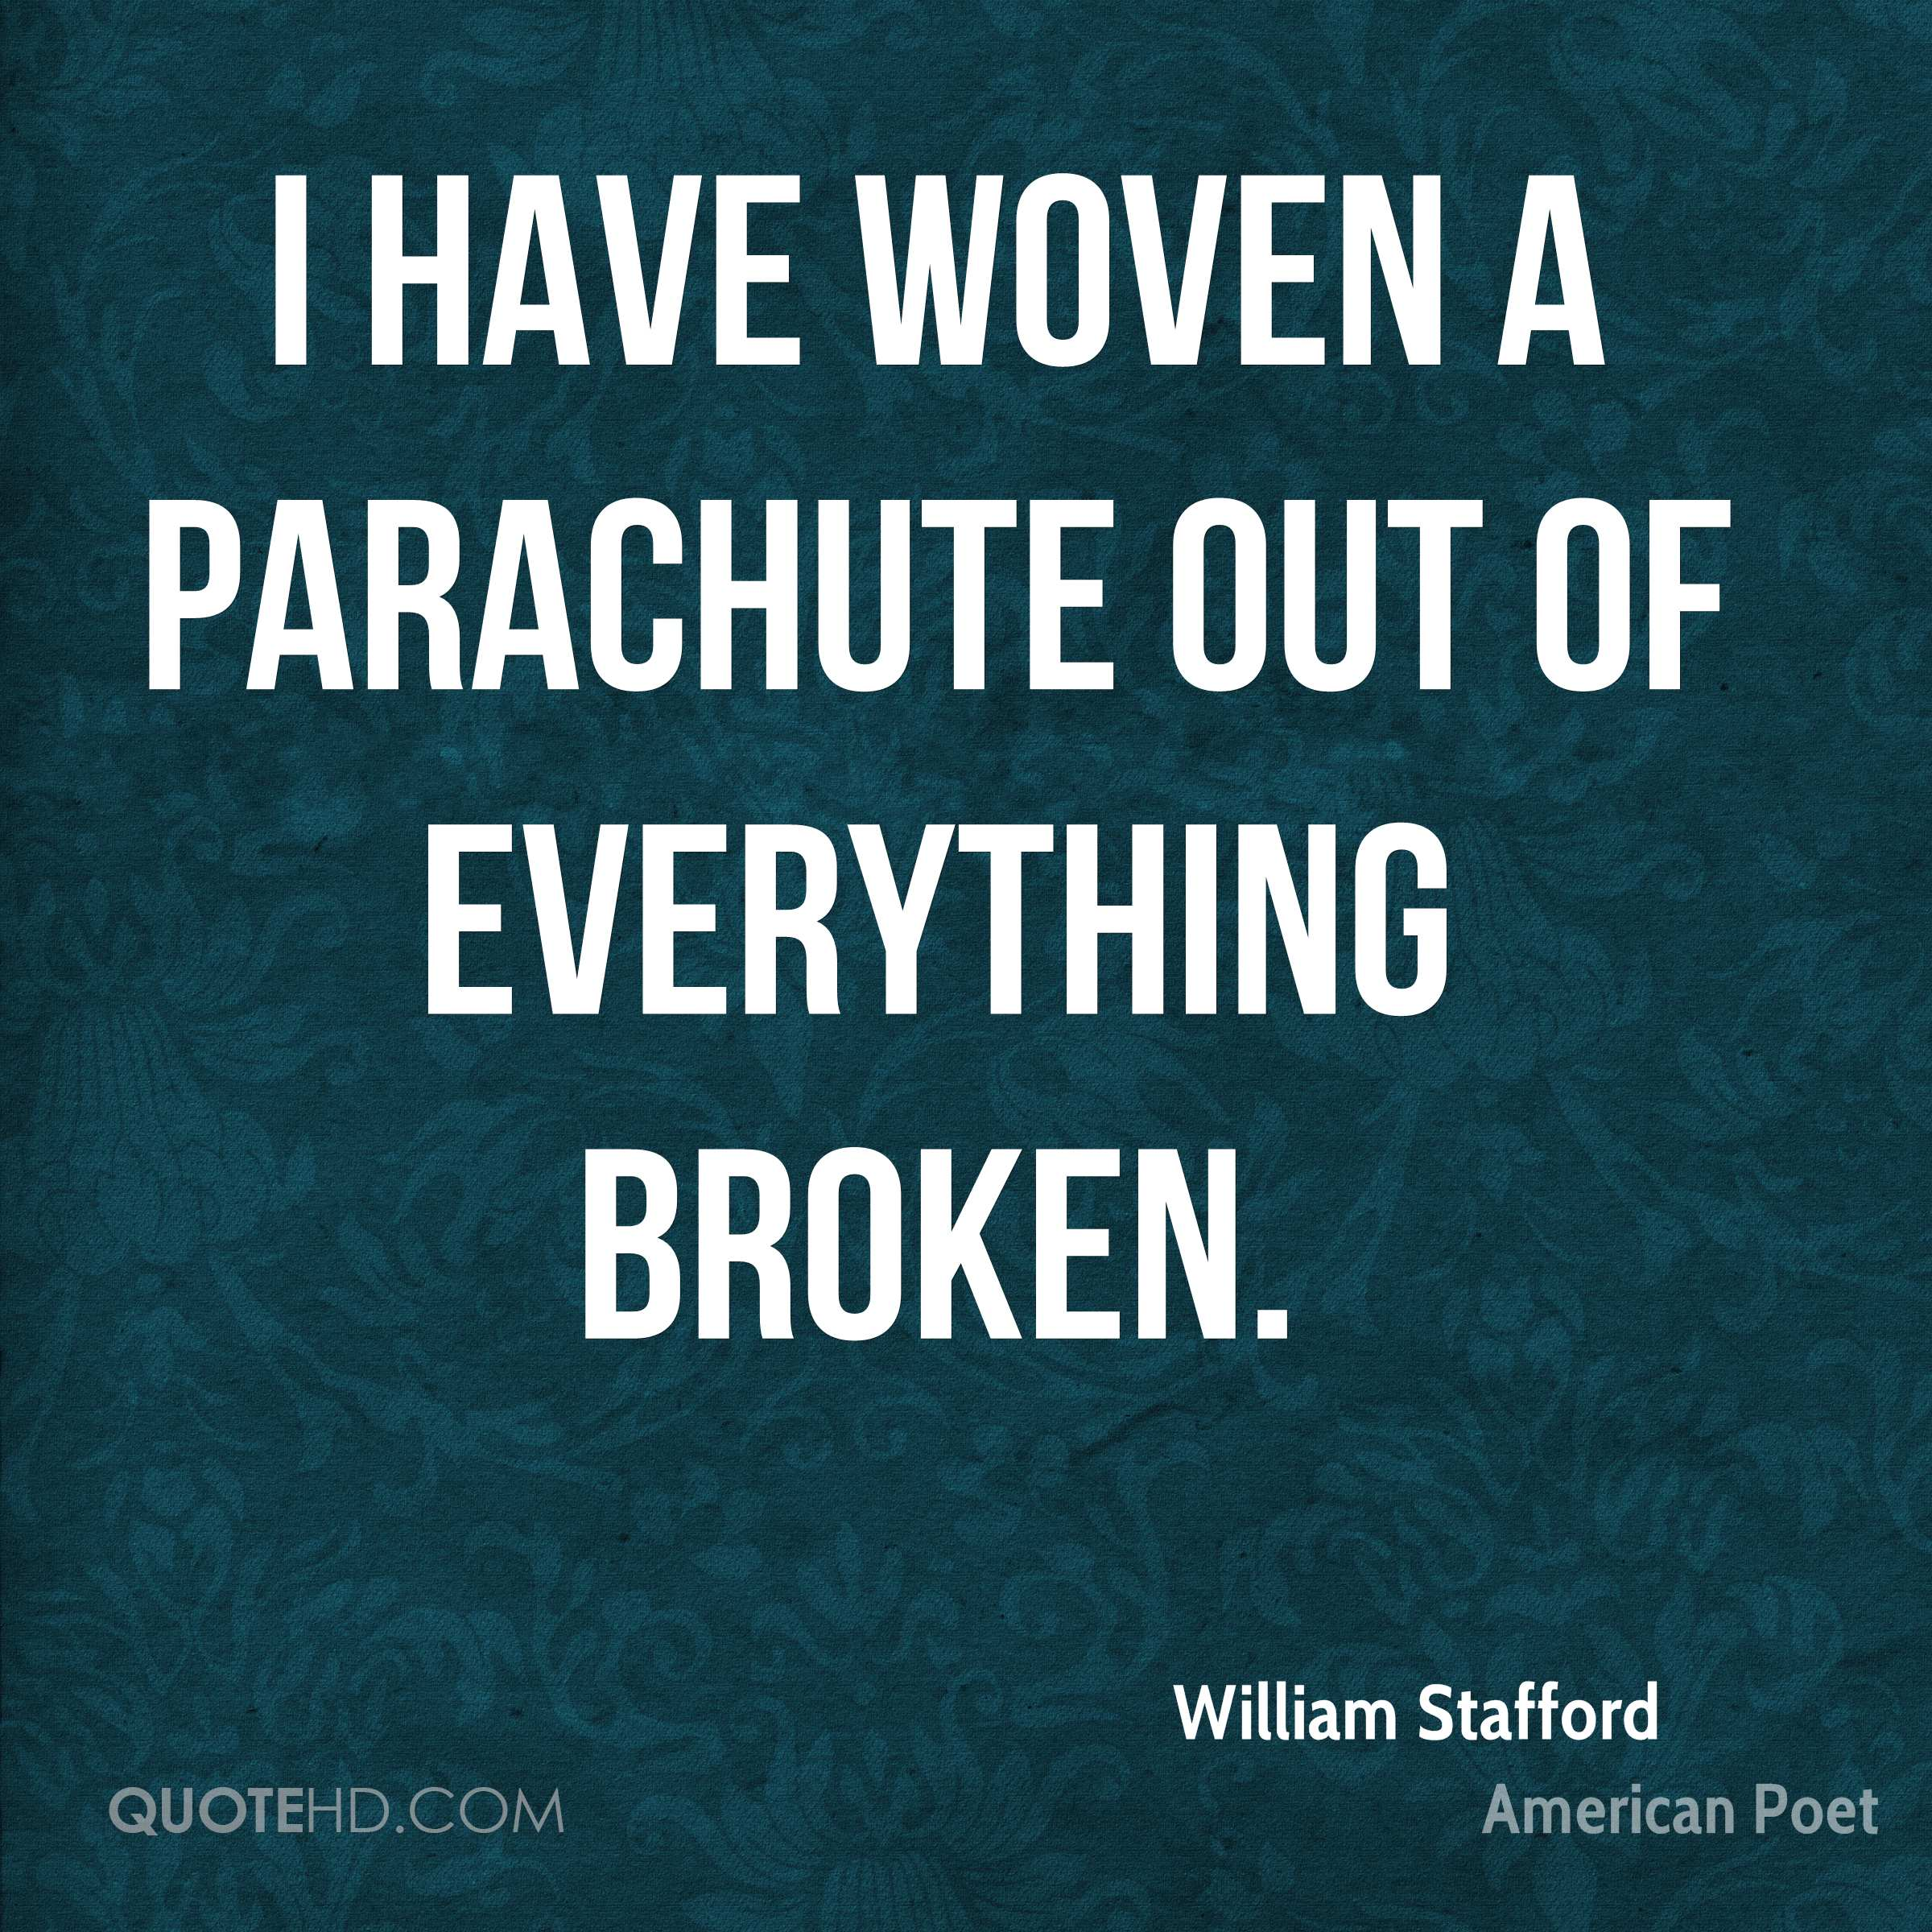 I have woven a parachute out of everything broken.